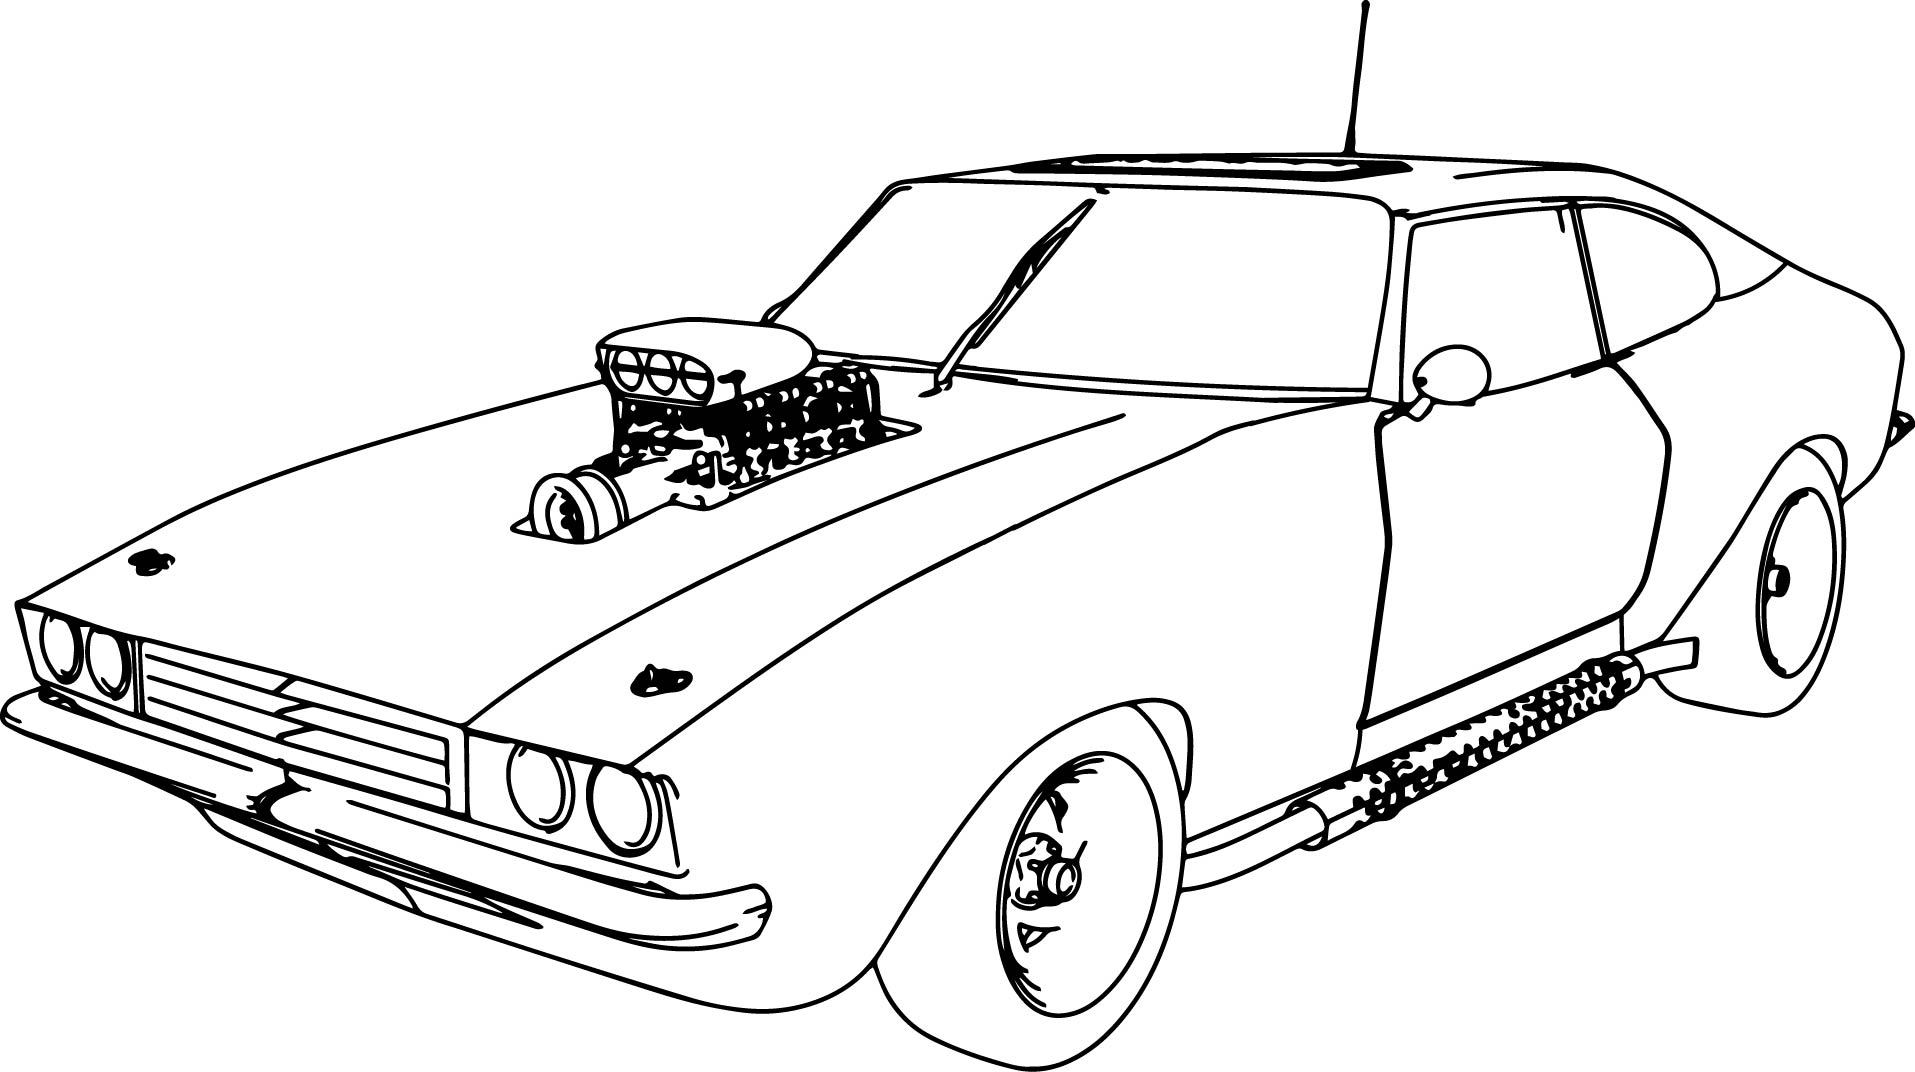 1915x1072 Police Car Coloring Pages Printable Dodge Charger Coloring Pages